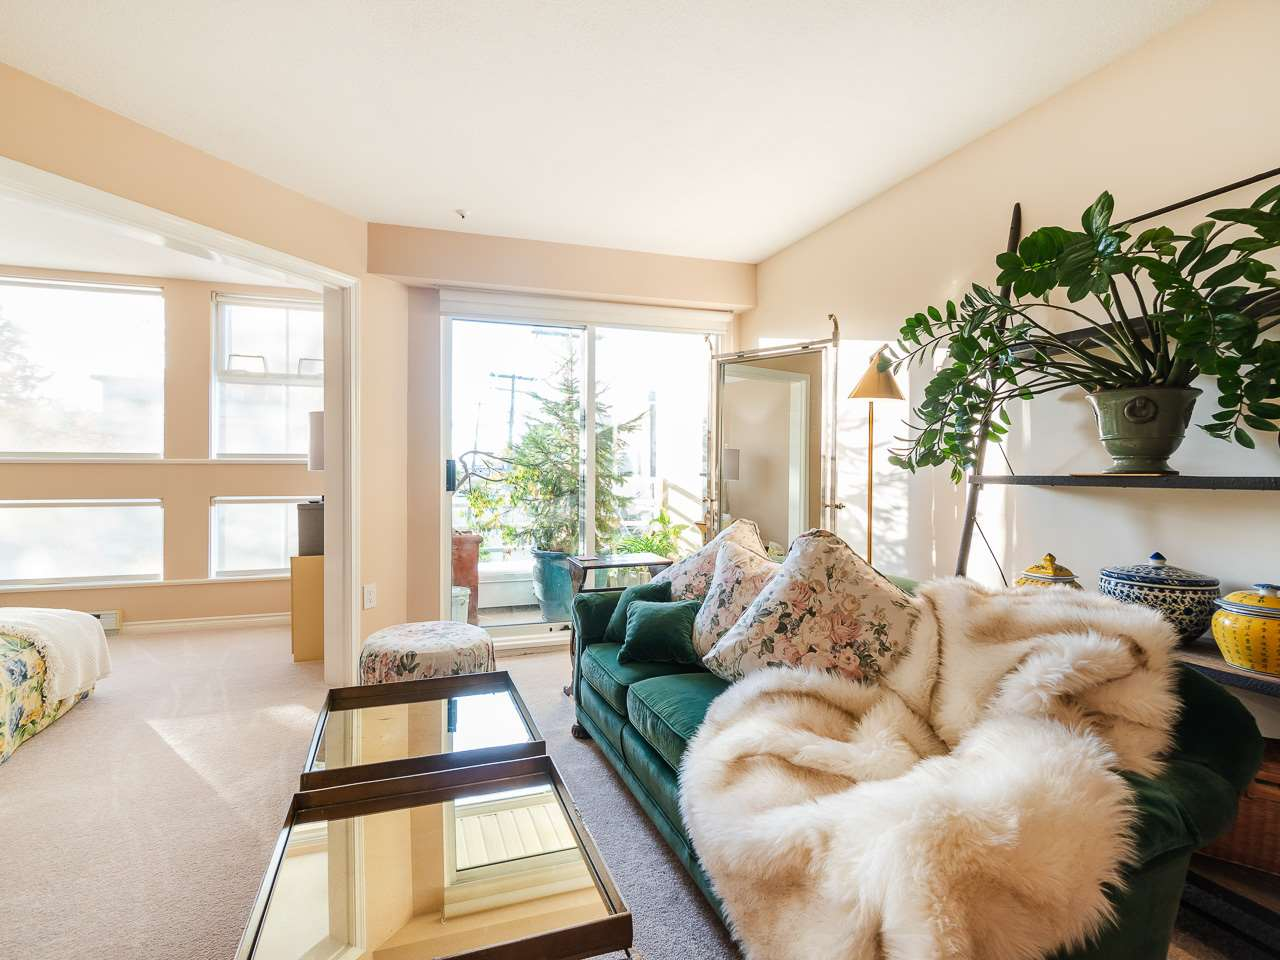 306 2105 W 42ND AVENUE - Kerrisdale Apartment/Condo for sale, 1 Bedroom (R2511504) - #6